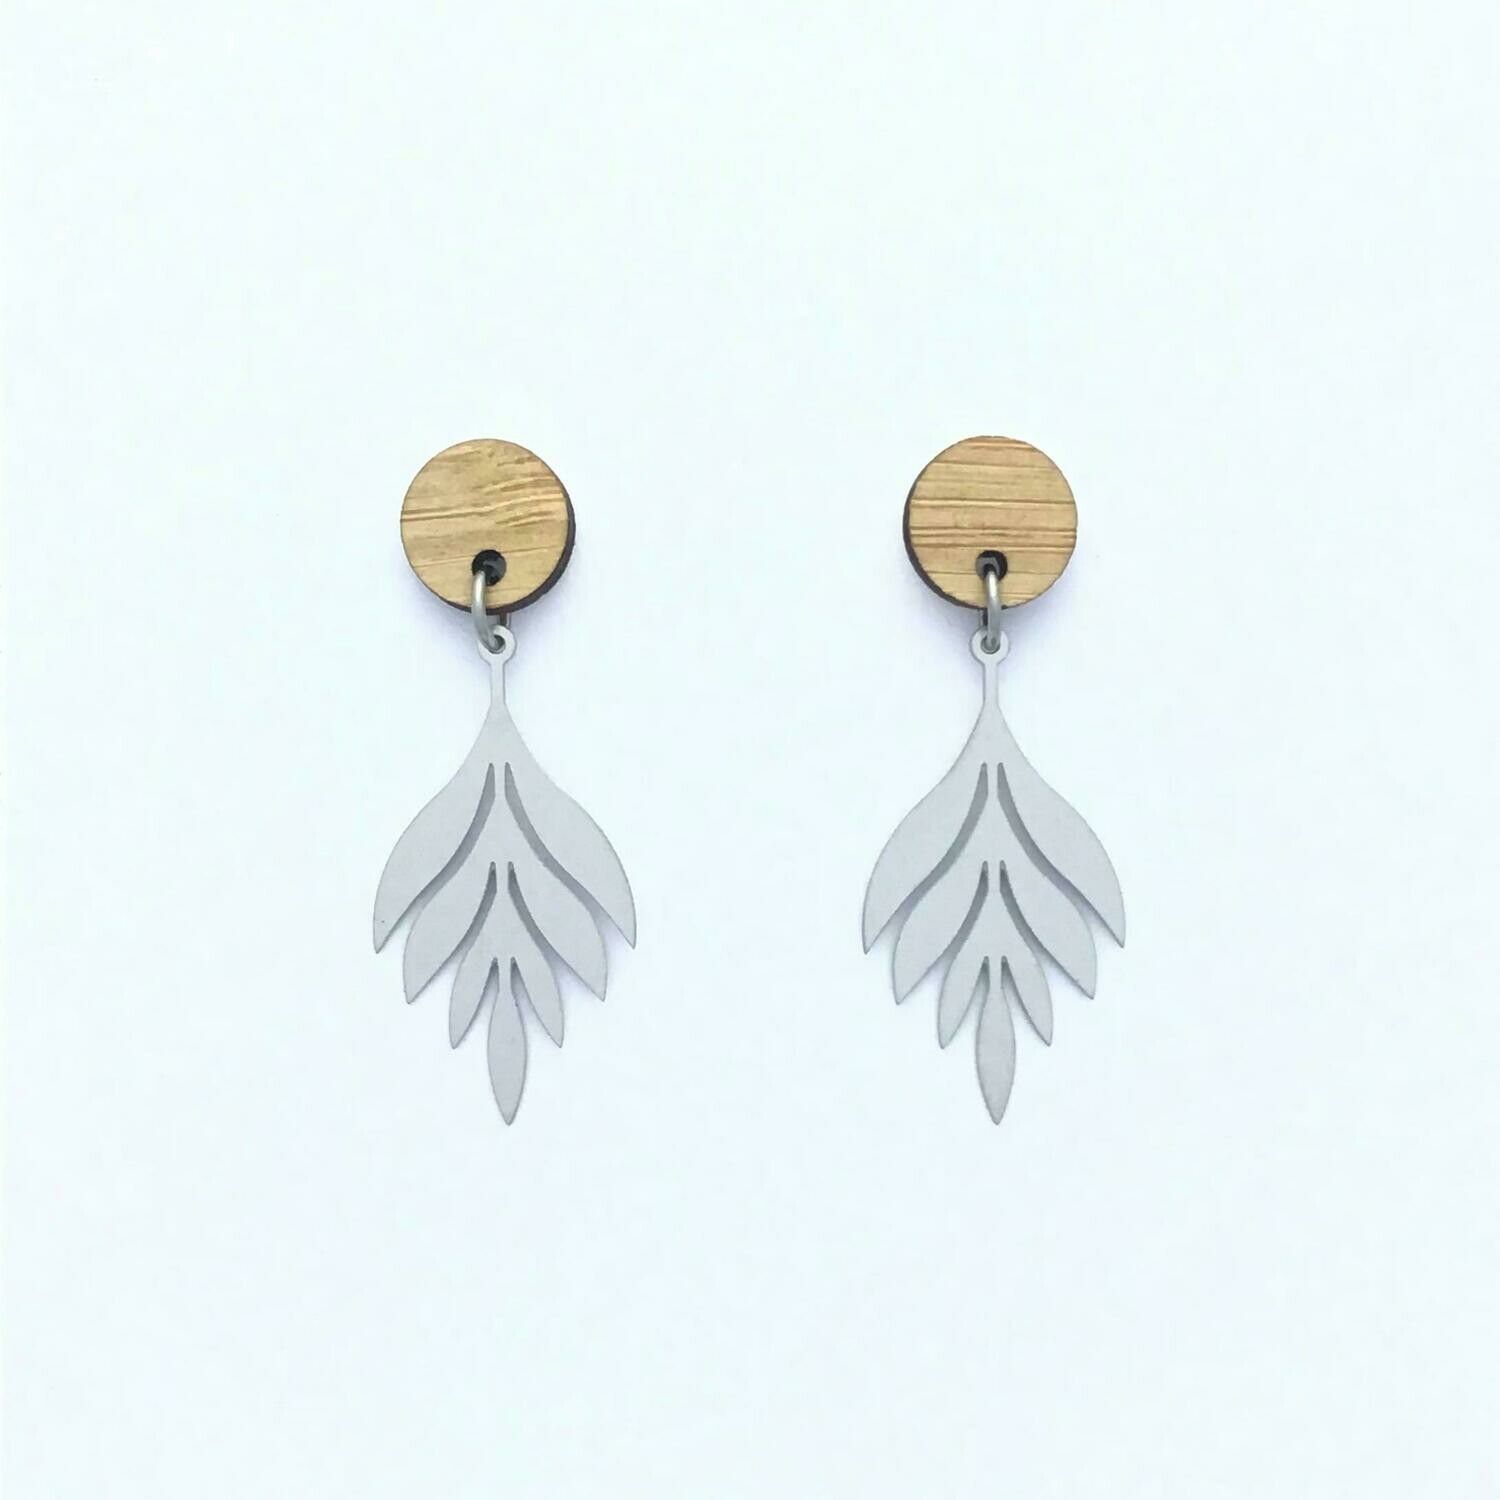 Bamboo Top Long Leaf Stainless Steel Dangles